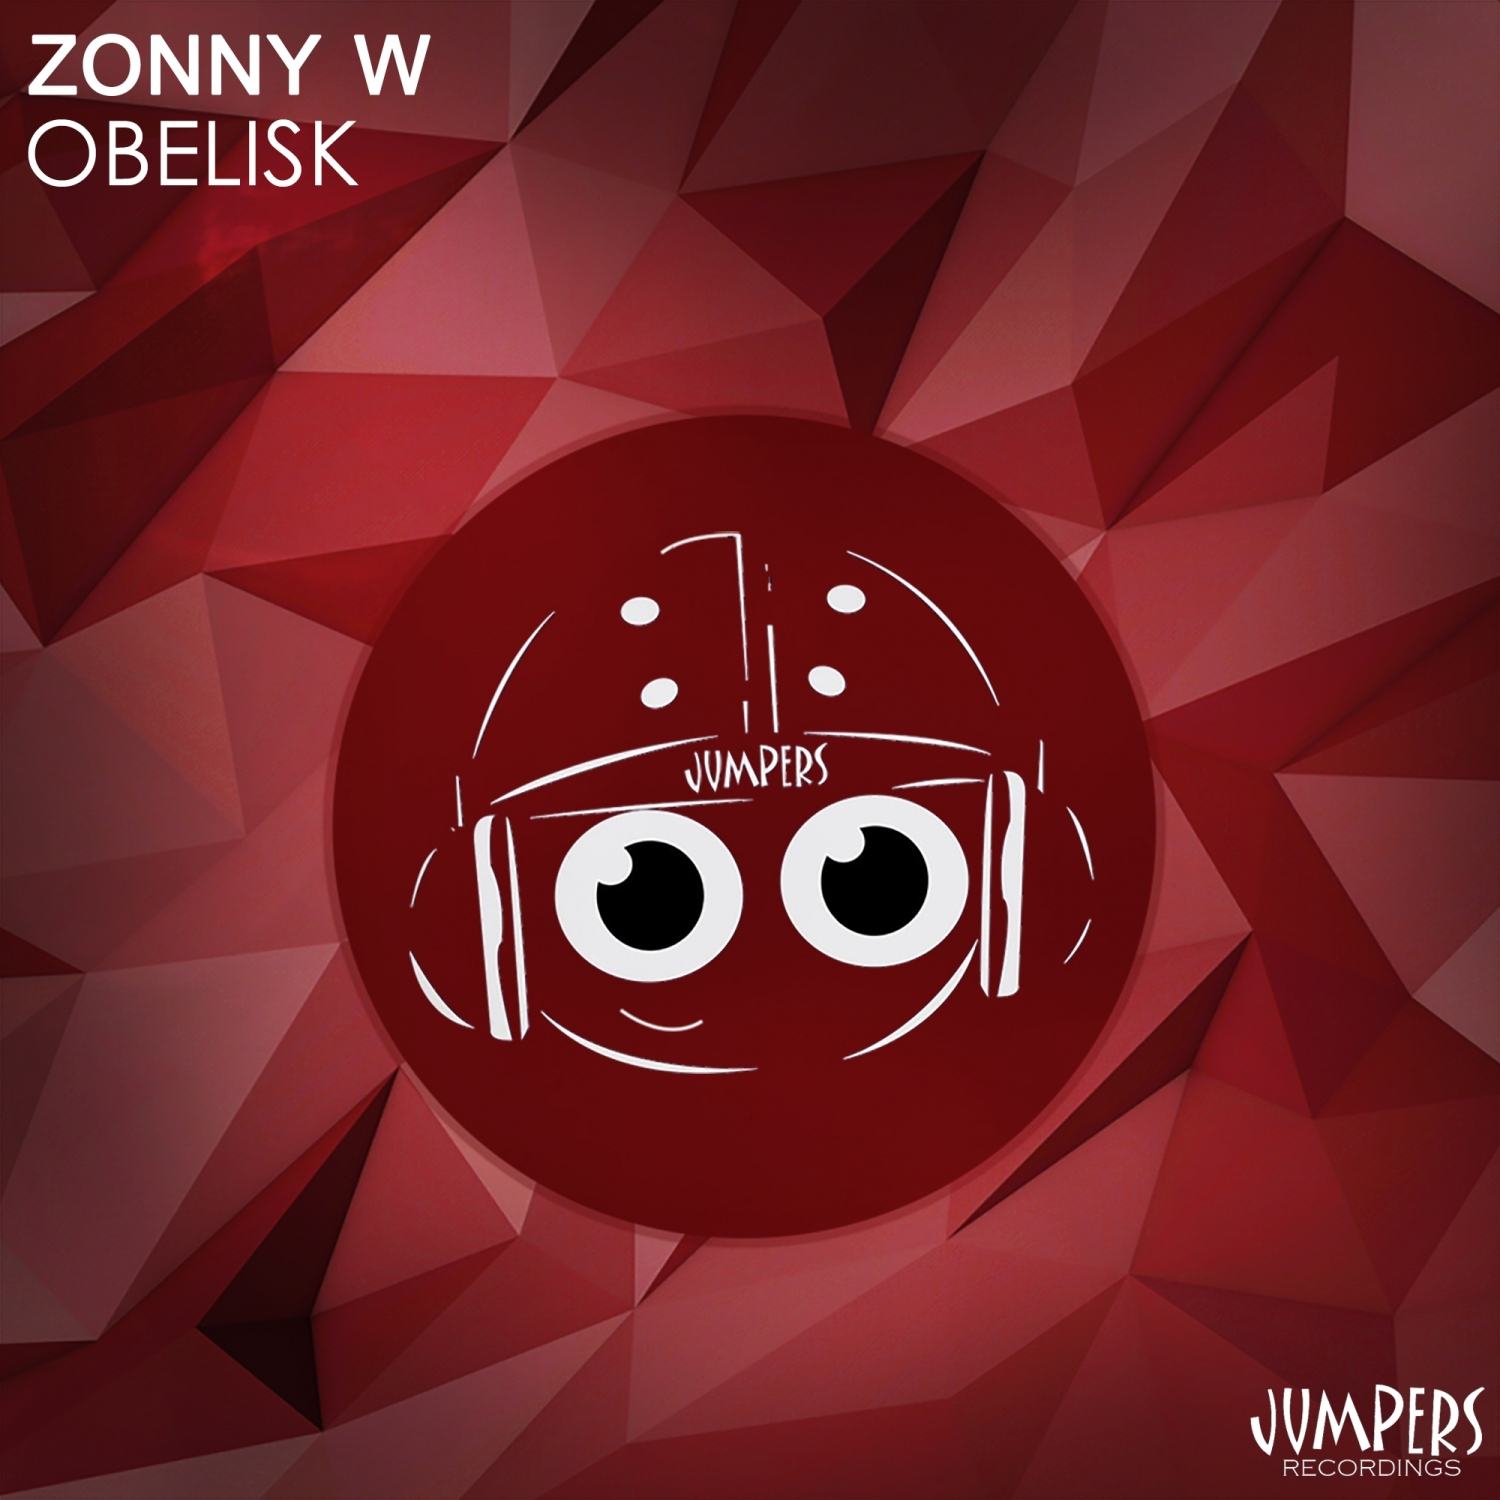 Zonny W - Obelisk  (Original Mix)